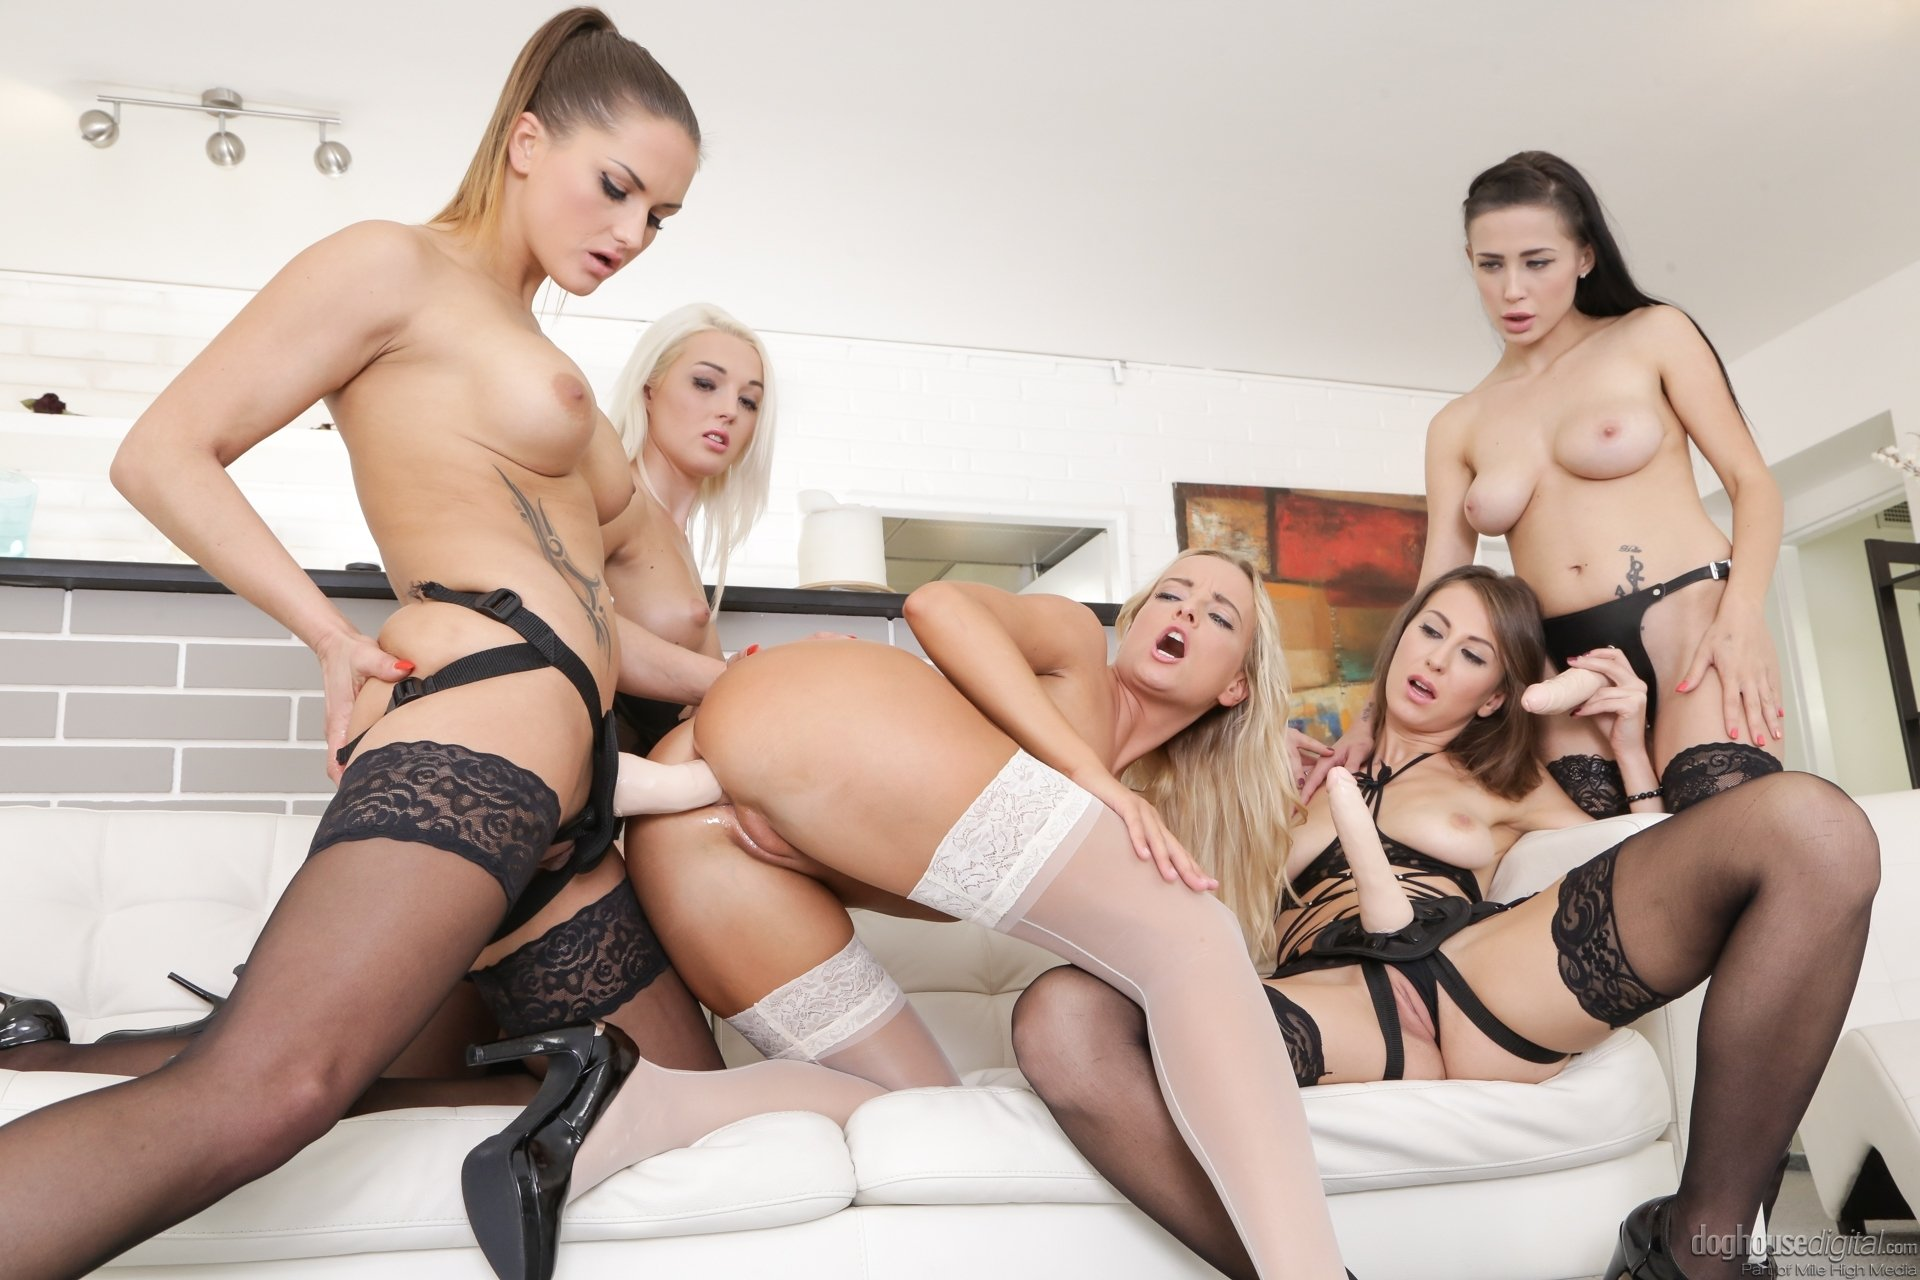 Free hd big boobs porn Oral loving for lesbians in boot camp